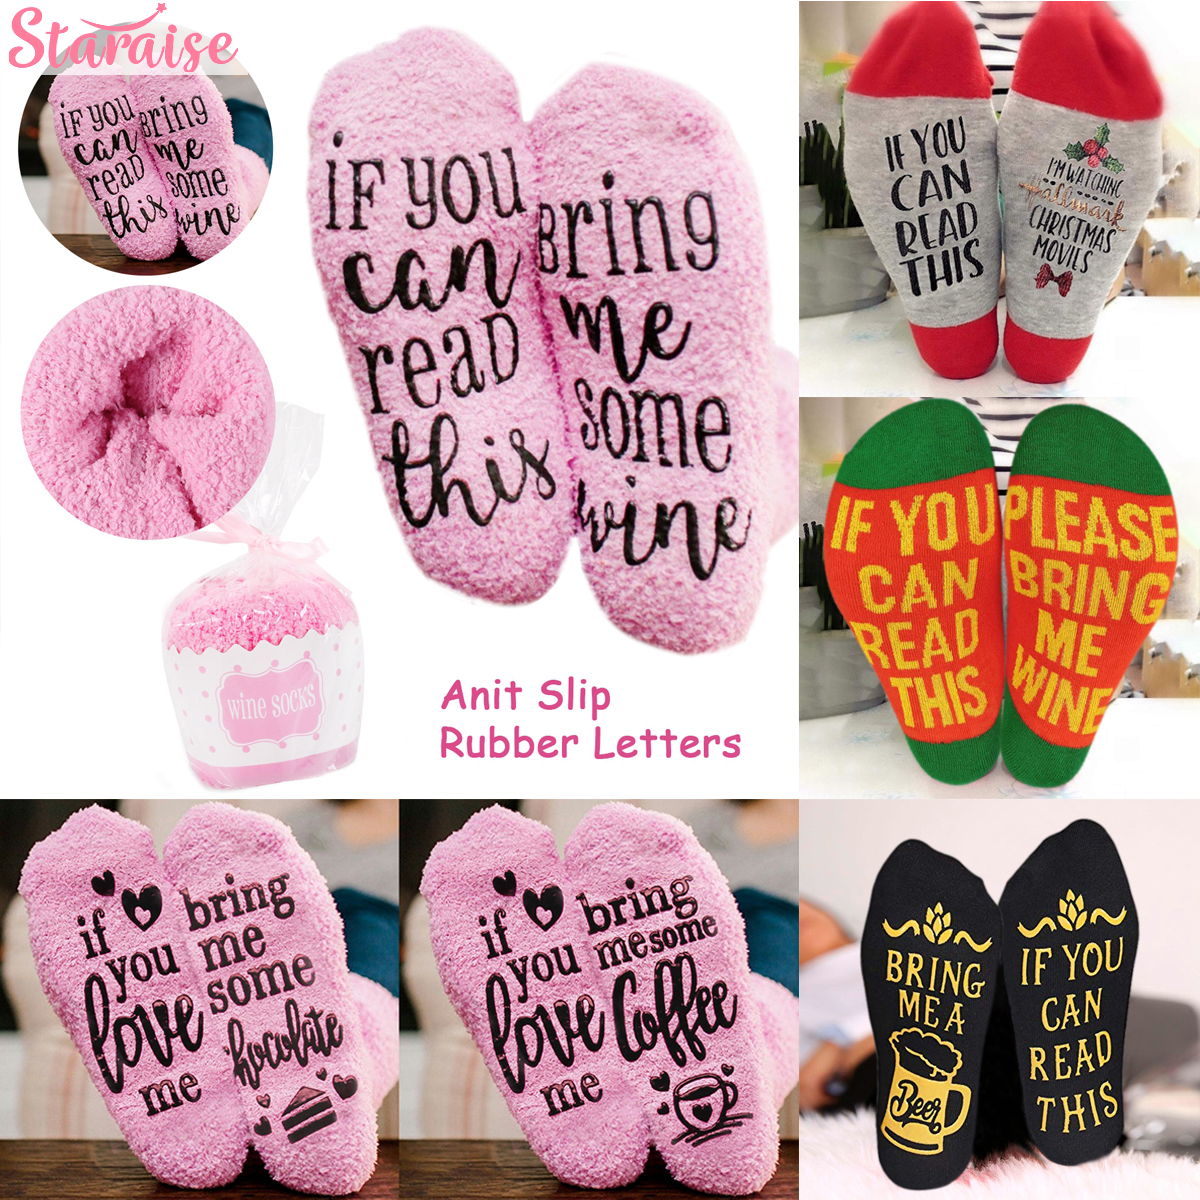 If You Can Read This Bring Me A Glass Of Wine/Beer Letter Print Stylish Cotton Socks Christmas Socks Gift Navidad New Year 2020